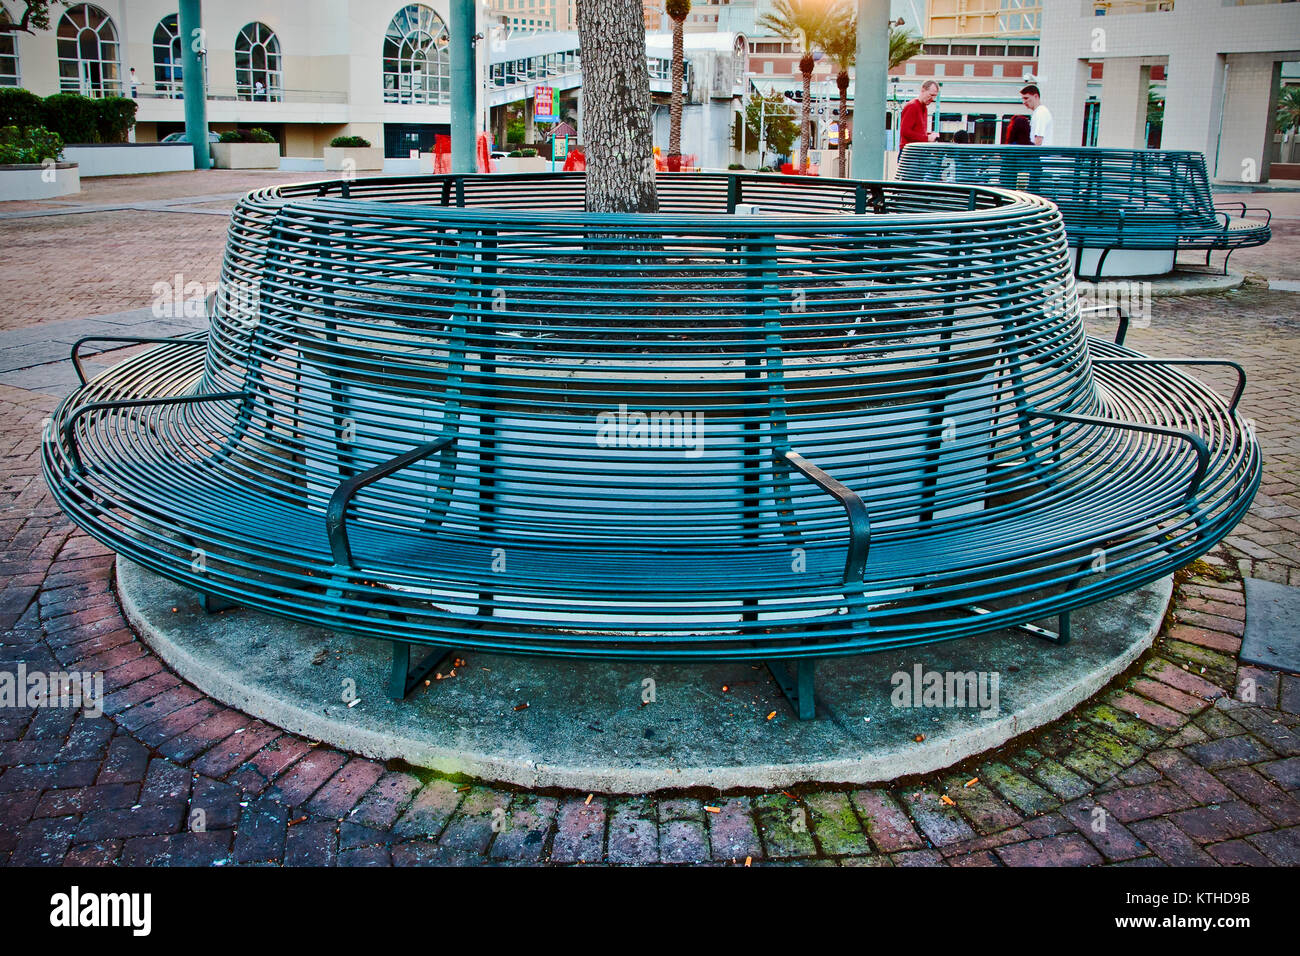 Ornate metal round bench, Waterfront, New Orleans, Louisiana, USA,  North America - Stock Image